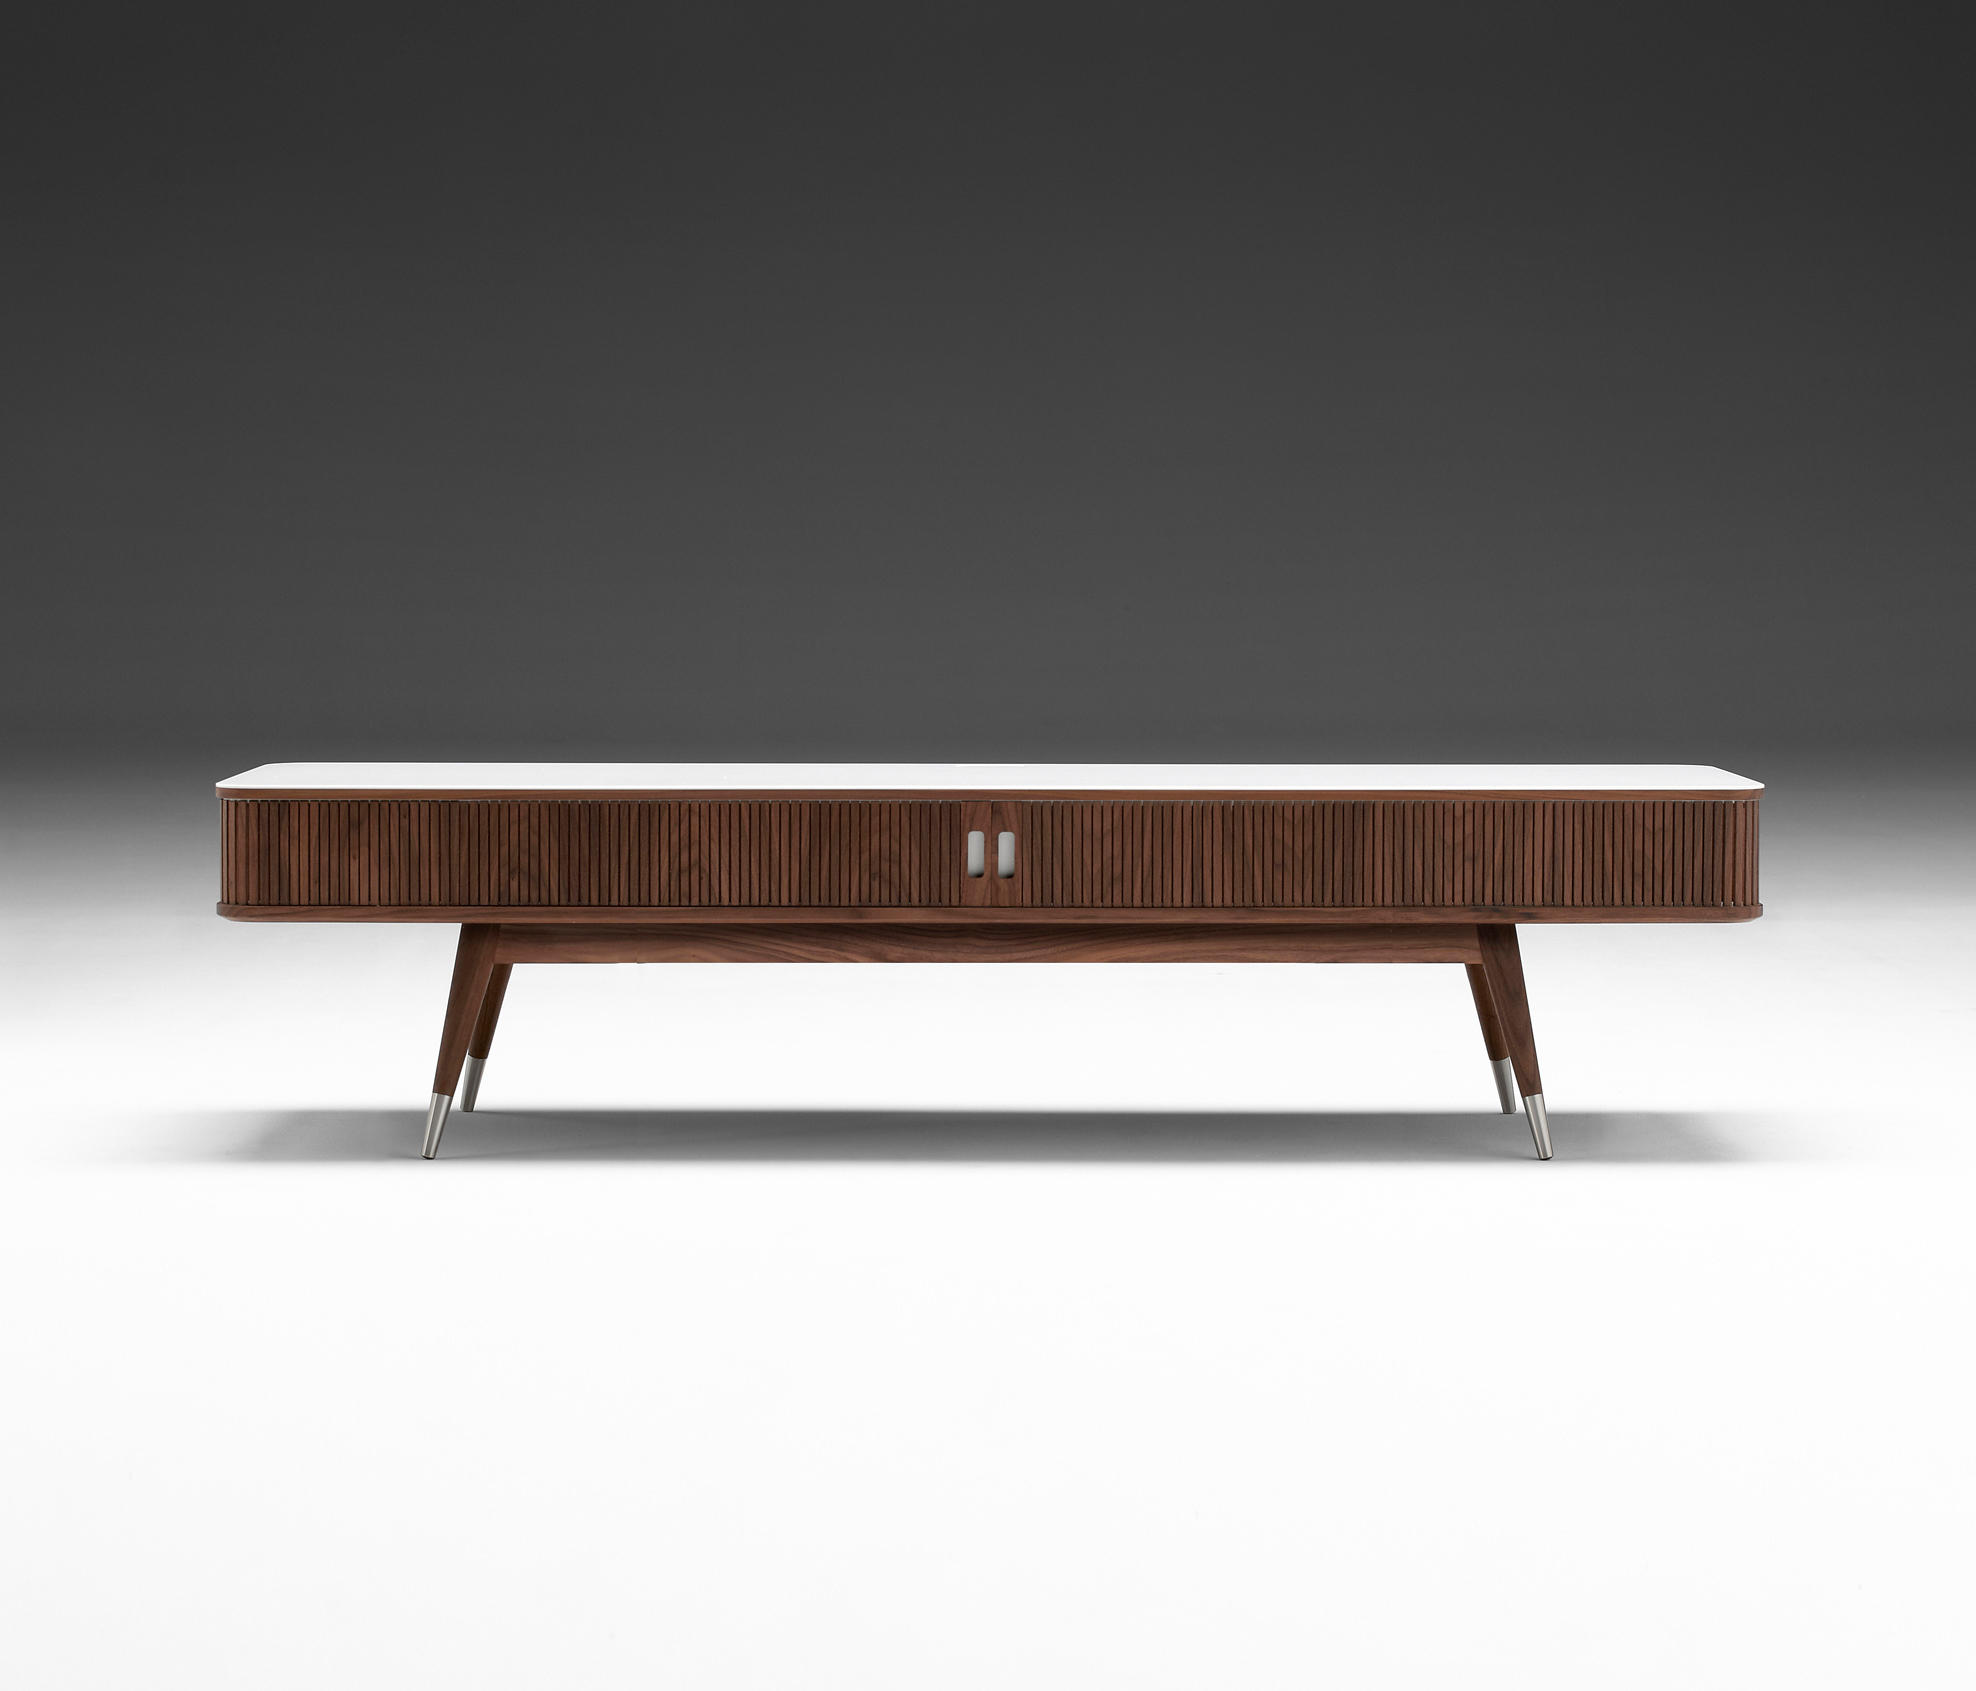 Tv Bank Klein Multimedia Sideboards Hochwertige Designer Multimedia Sideboards